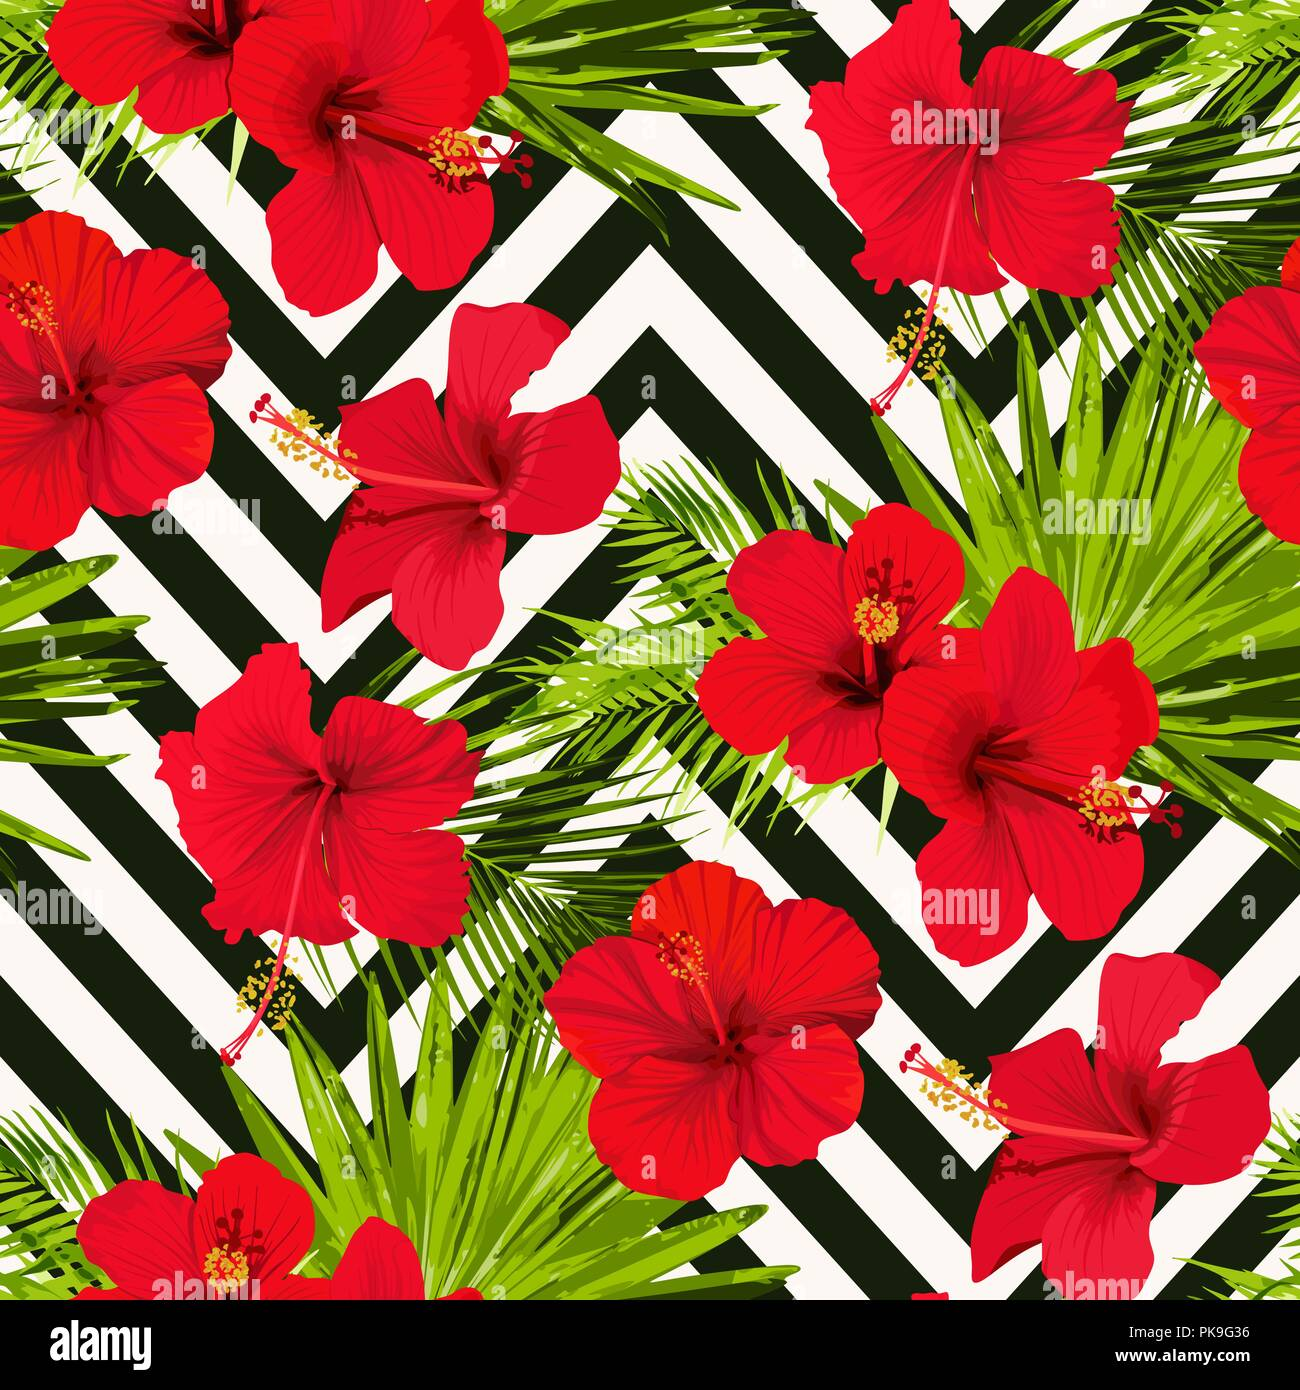 Hibiscus Flower Vector Seamless Pattern On A Abstract Chevron